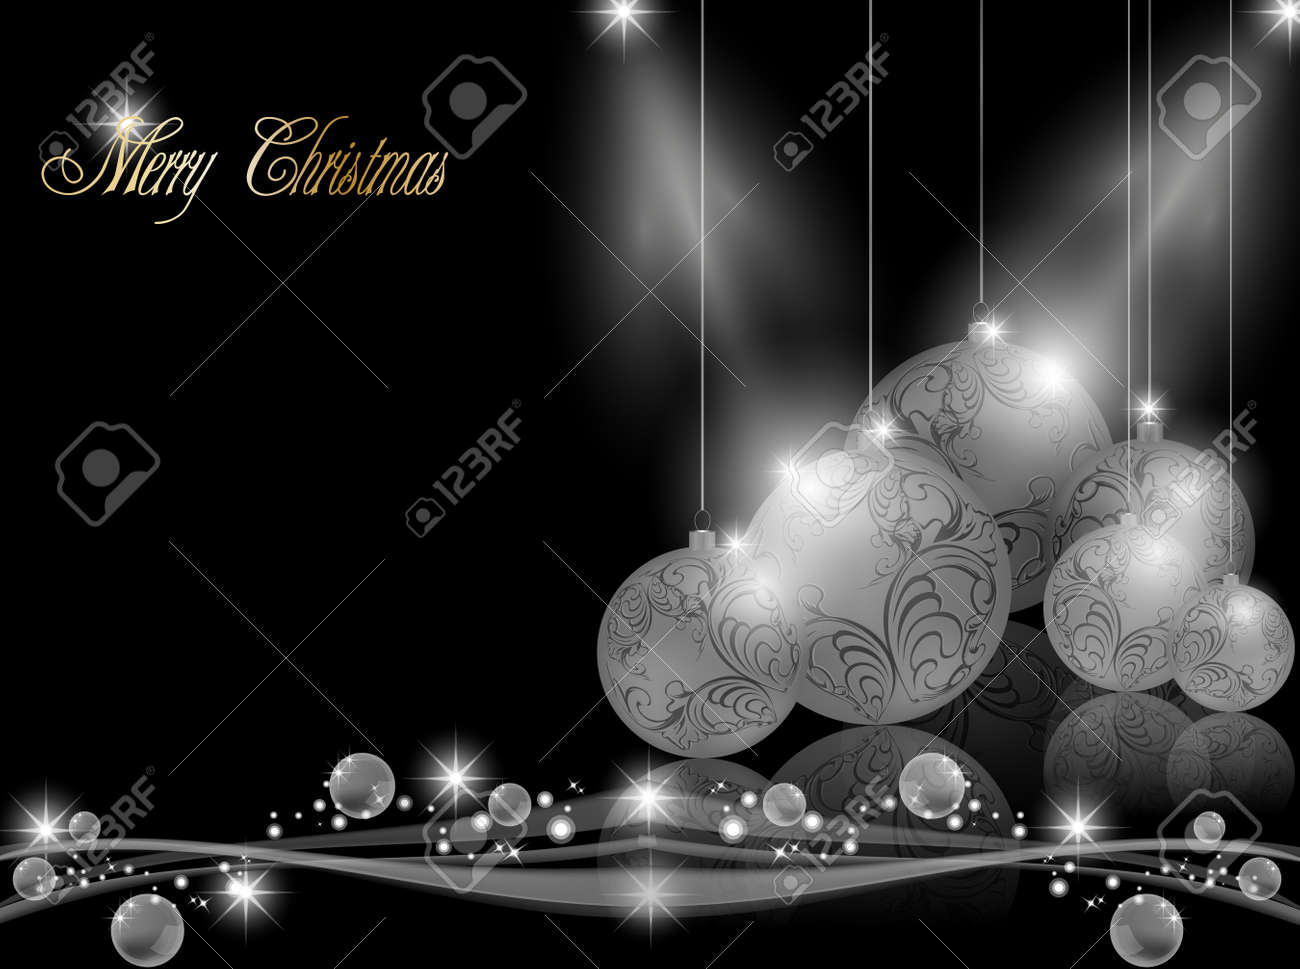 Elegant dark Christmas Background Stock Vector - 11367299